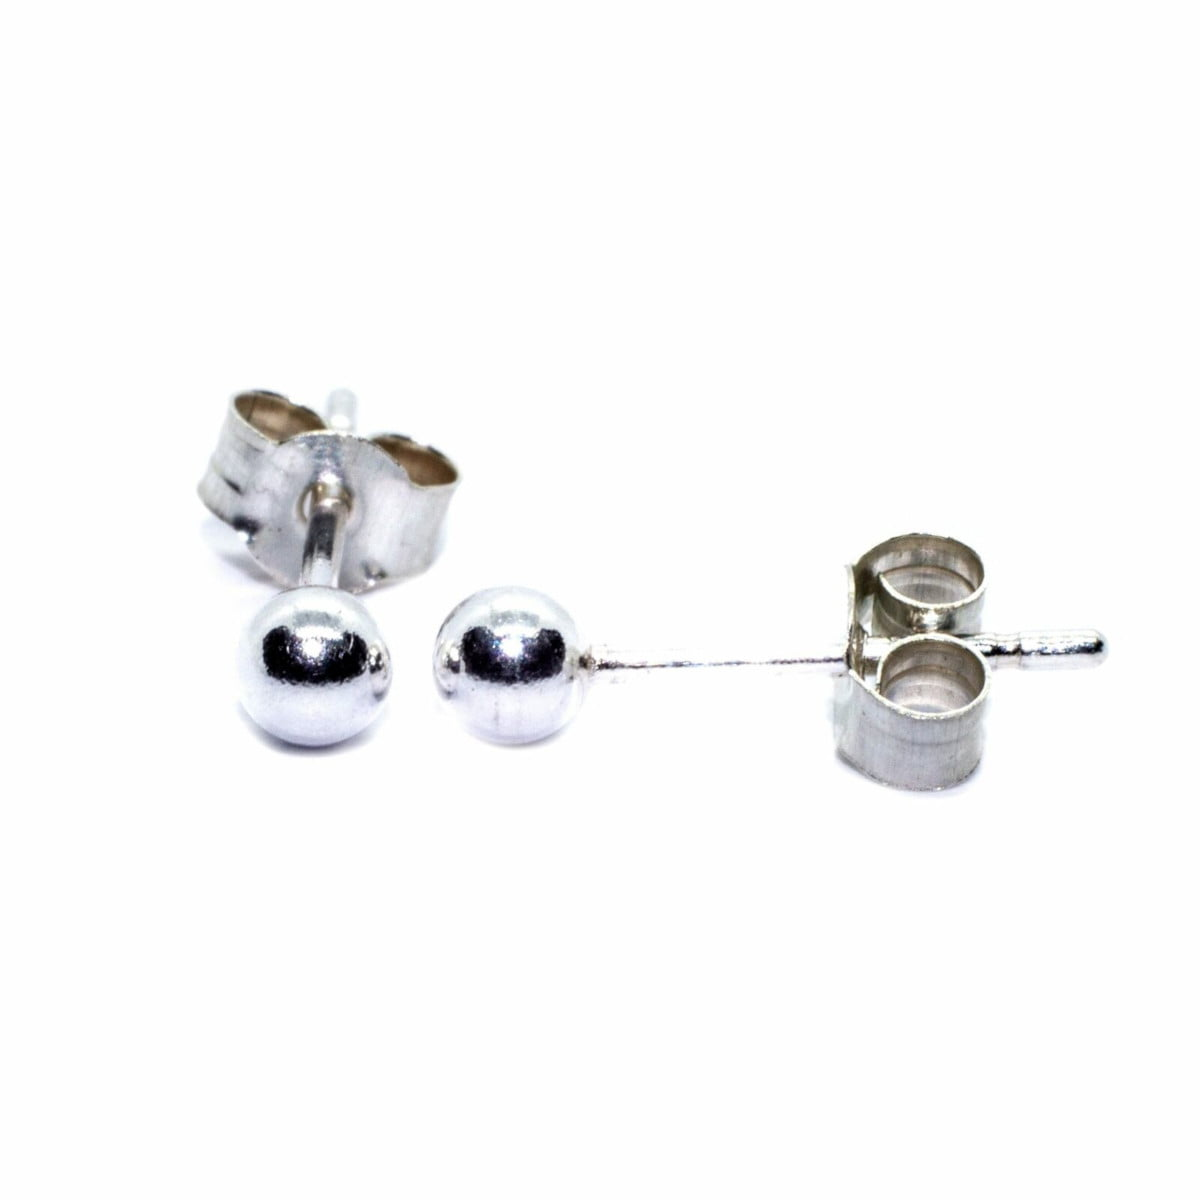 3 mm ball stud earrings in sterling silver